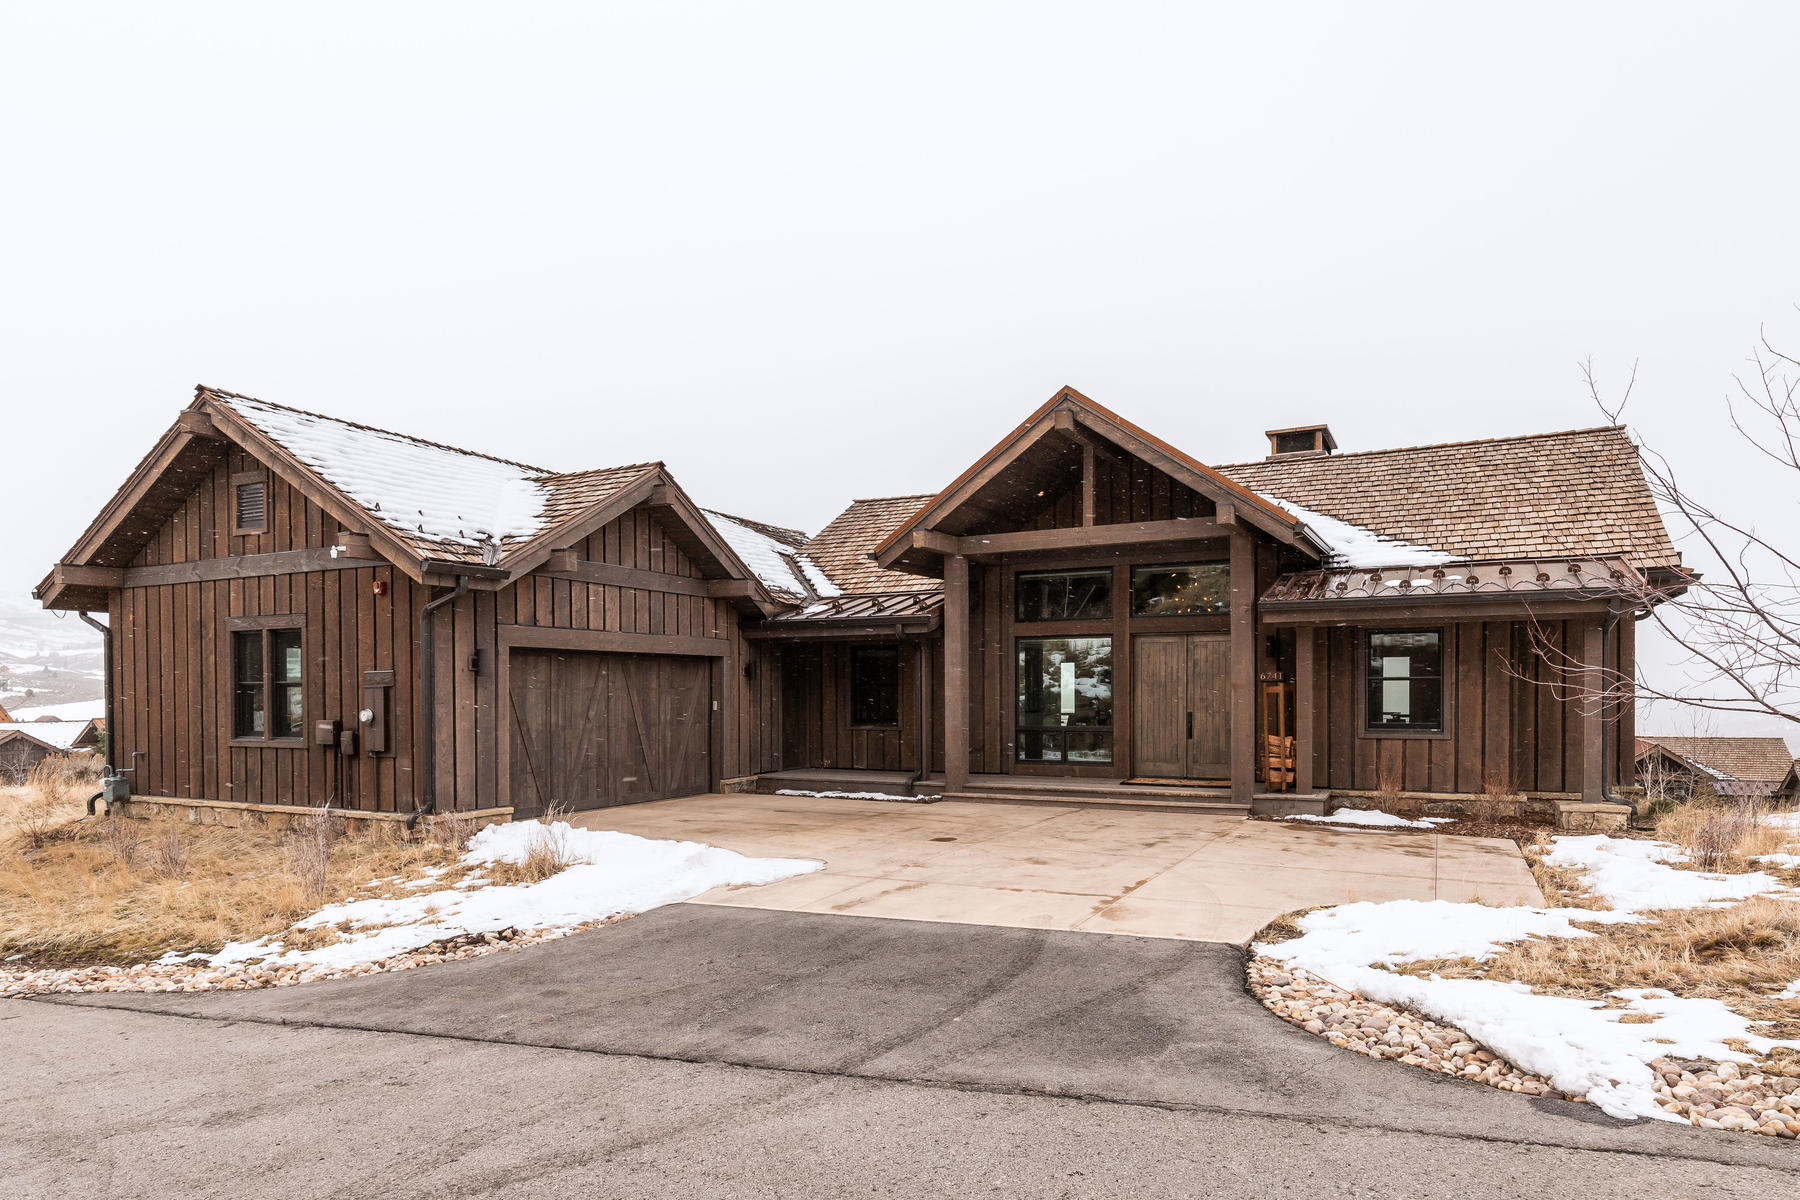 Single Family Homes for Active at Victory Ranch Home with Deer Valley Ski Resort and Jordanelle Reservoir Views! 6741 E Riparian Way Heber, Utah 84032 United States